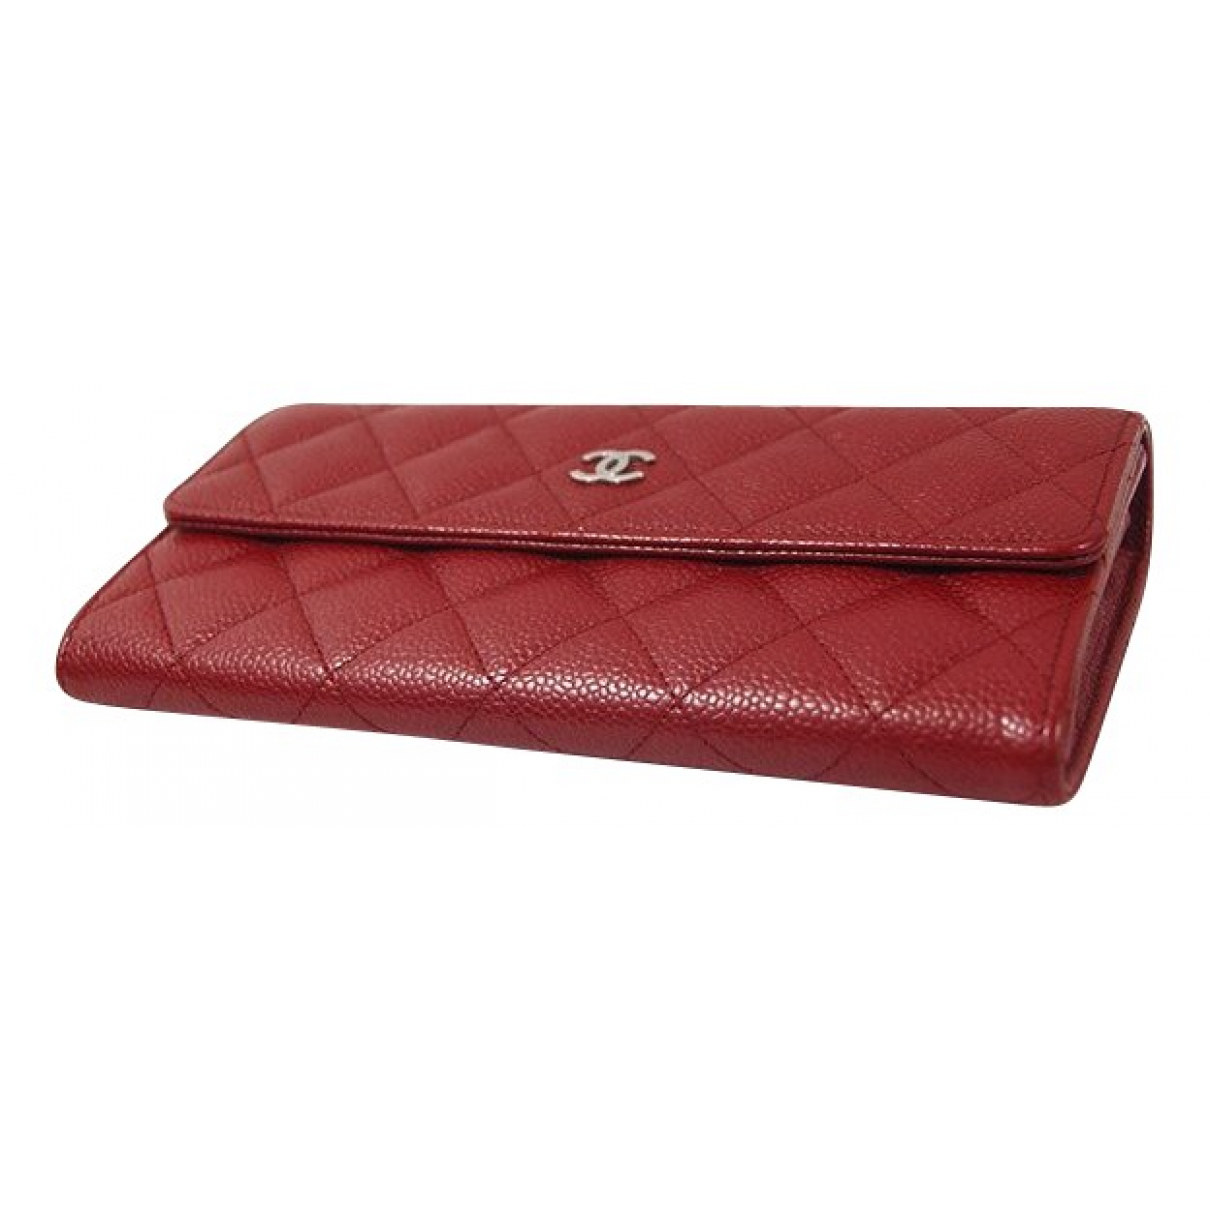 Chanel \N Red Leather wallet for Women \N